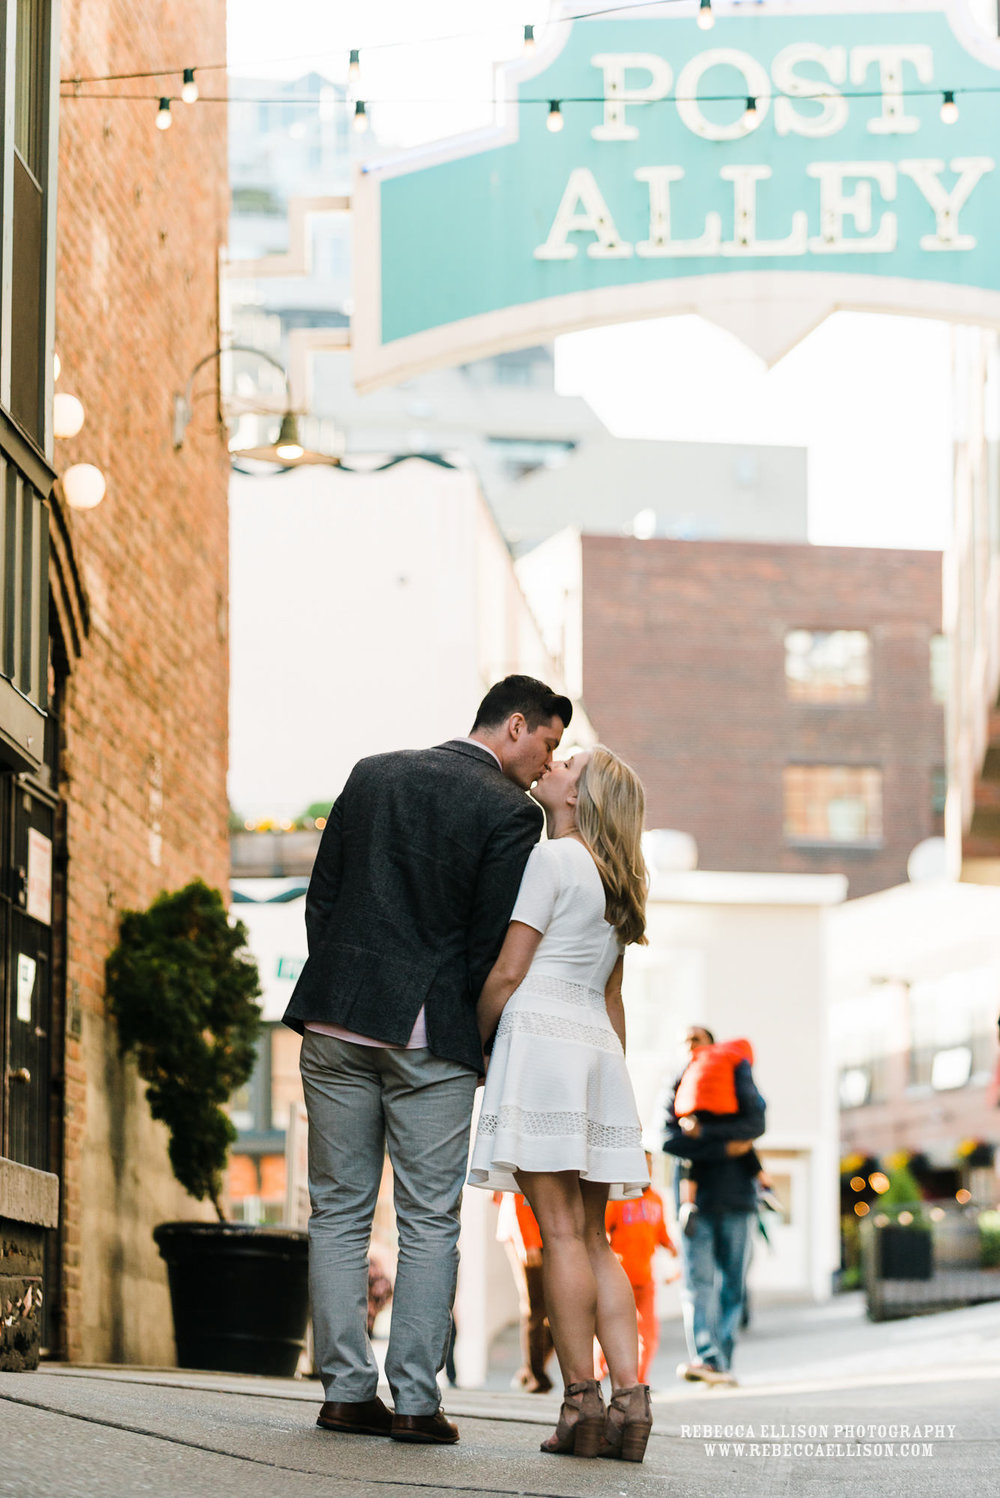 Late afternoon engagement photos at Pike Place Market in Seattle during golden hour of light.www.rebeccaellison.com